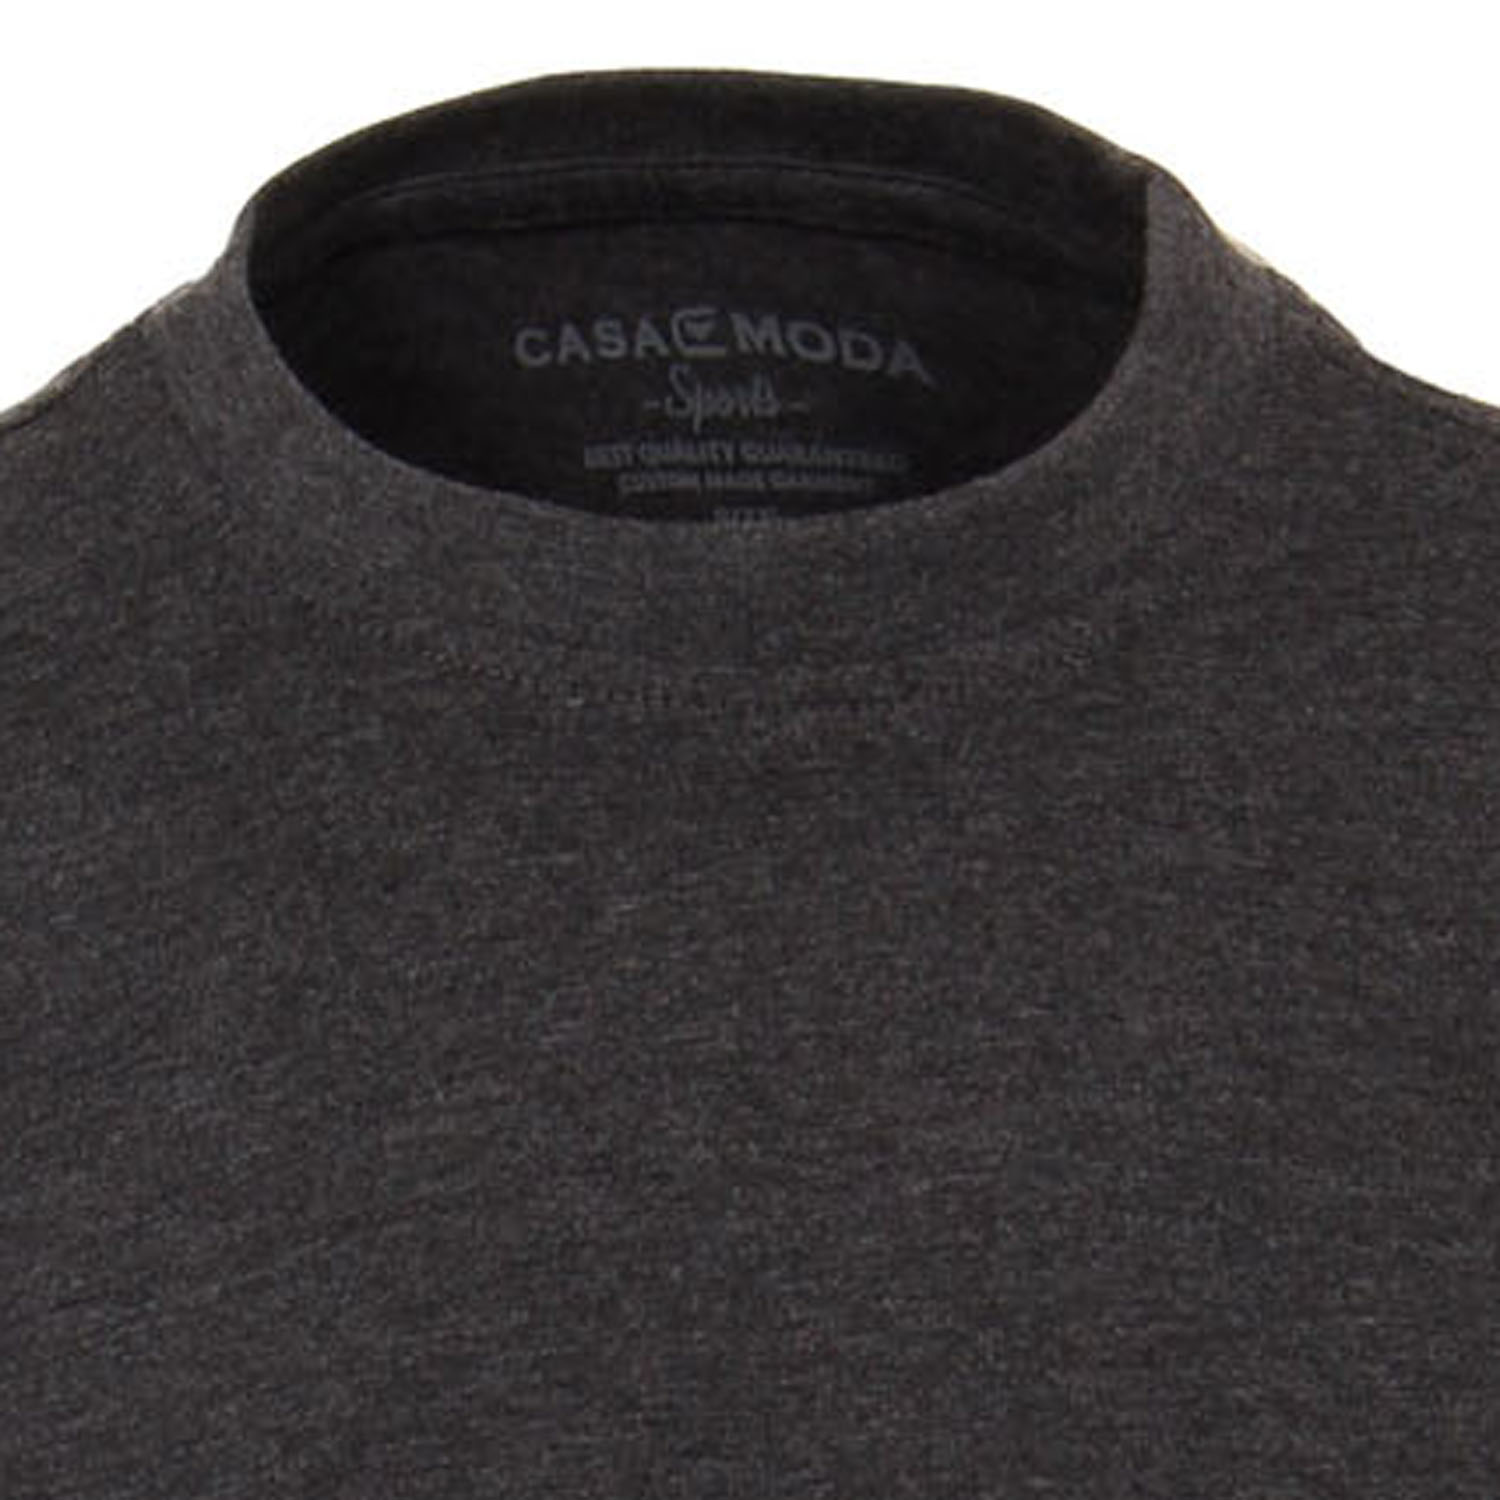 Detail Image to Basic T-shirt for men in heather gray by Casamoda in plus size up to 6XL